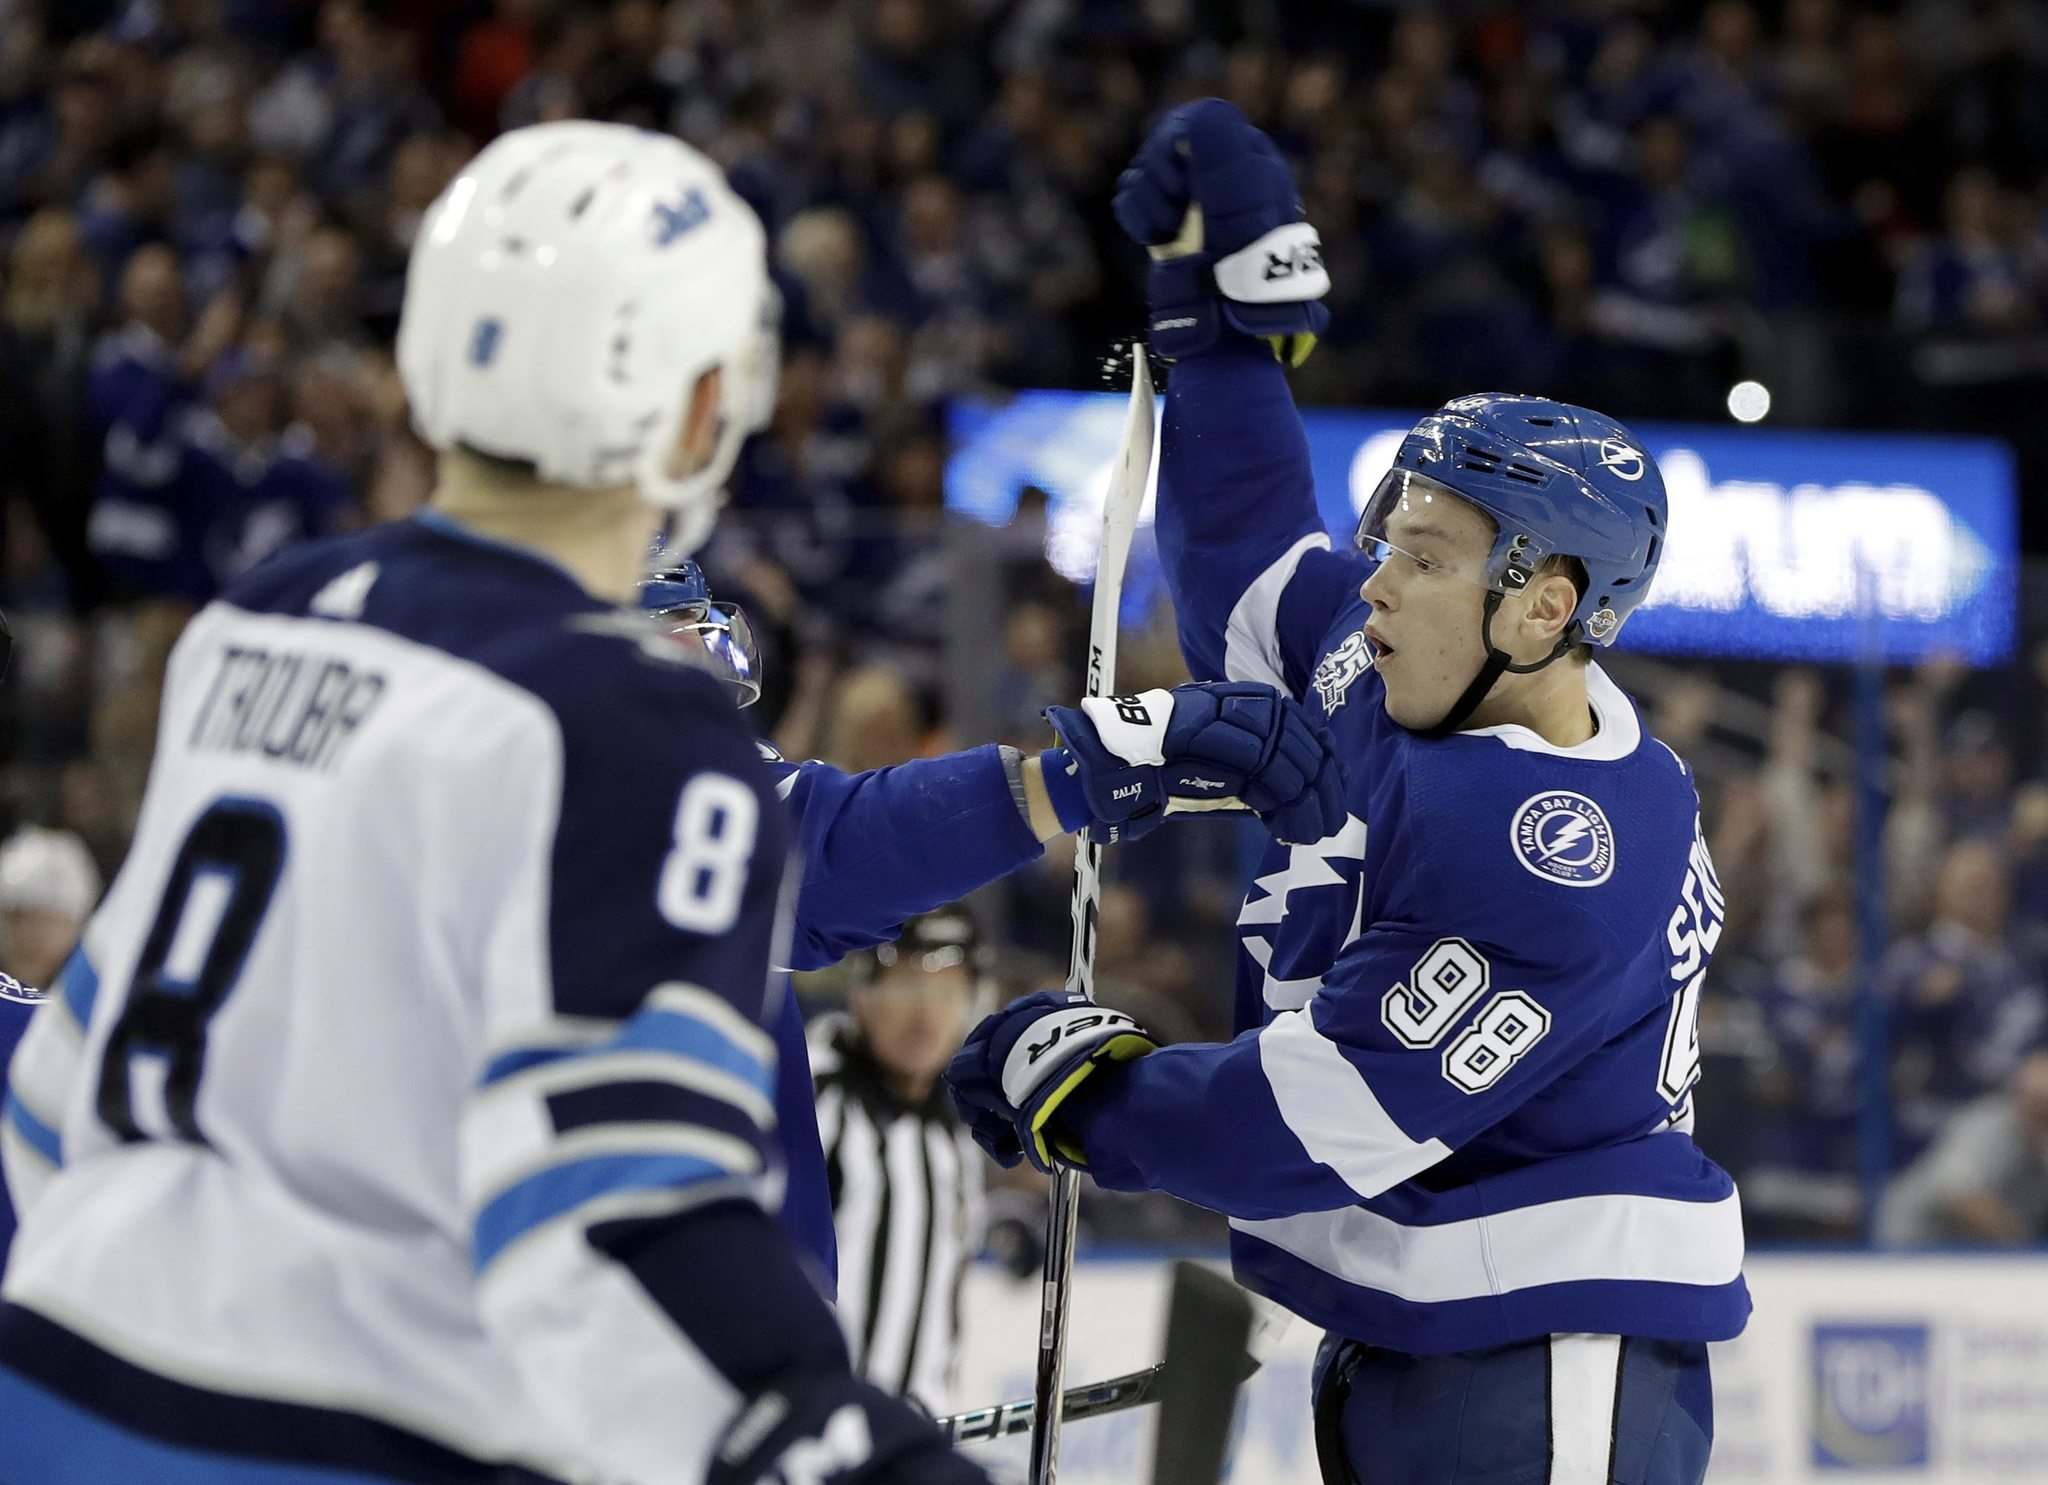 Chris O'Meara / The Associated Press</p><p>Tampa Bay Lightning defenseman Mikhail Sergachev (98) celebrates after his goal against the Winnipeg Jets during the second period of an NHL hockey game Saturday, Dec. 9, 2017, in Tampa, Fla.</p></p>